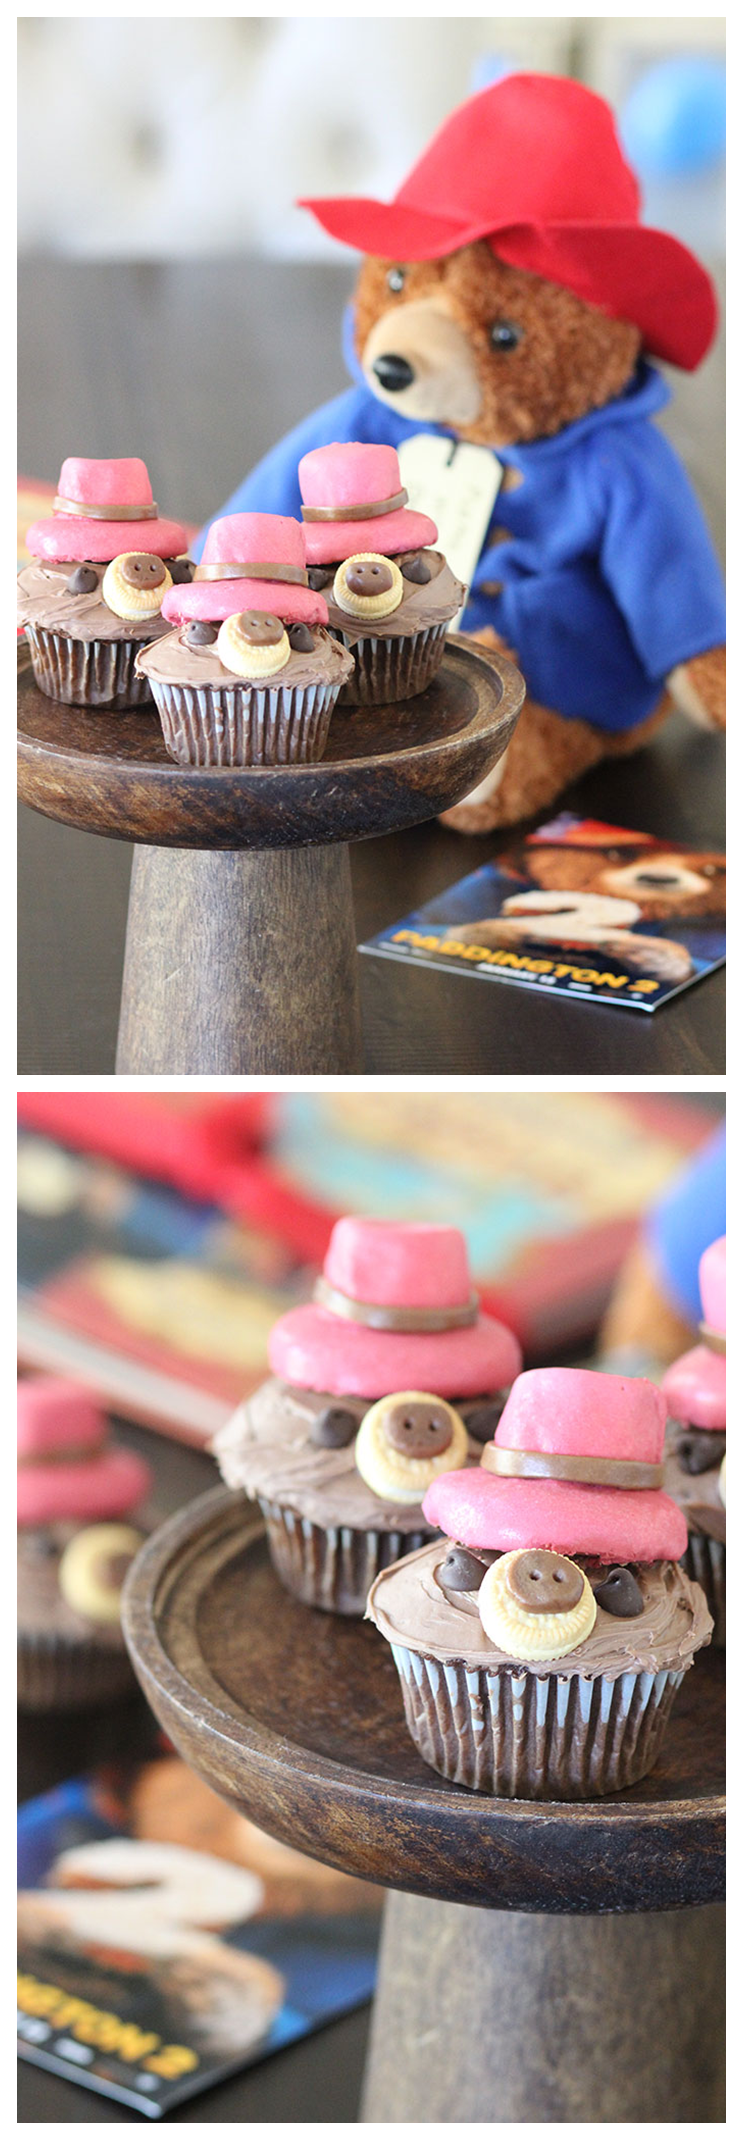 Enjoy these chocolate cupcakes with our sweet, lovable Paddington! @dawnchats | Paddington 2 - in theaters now